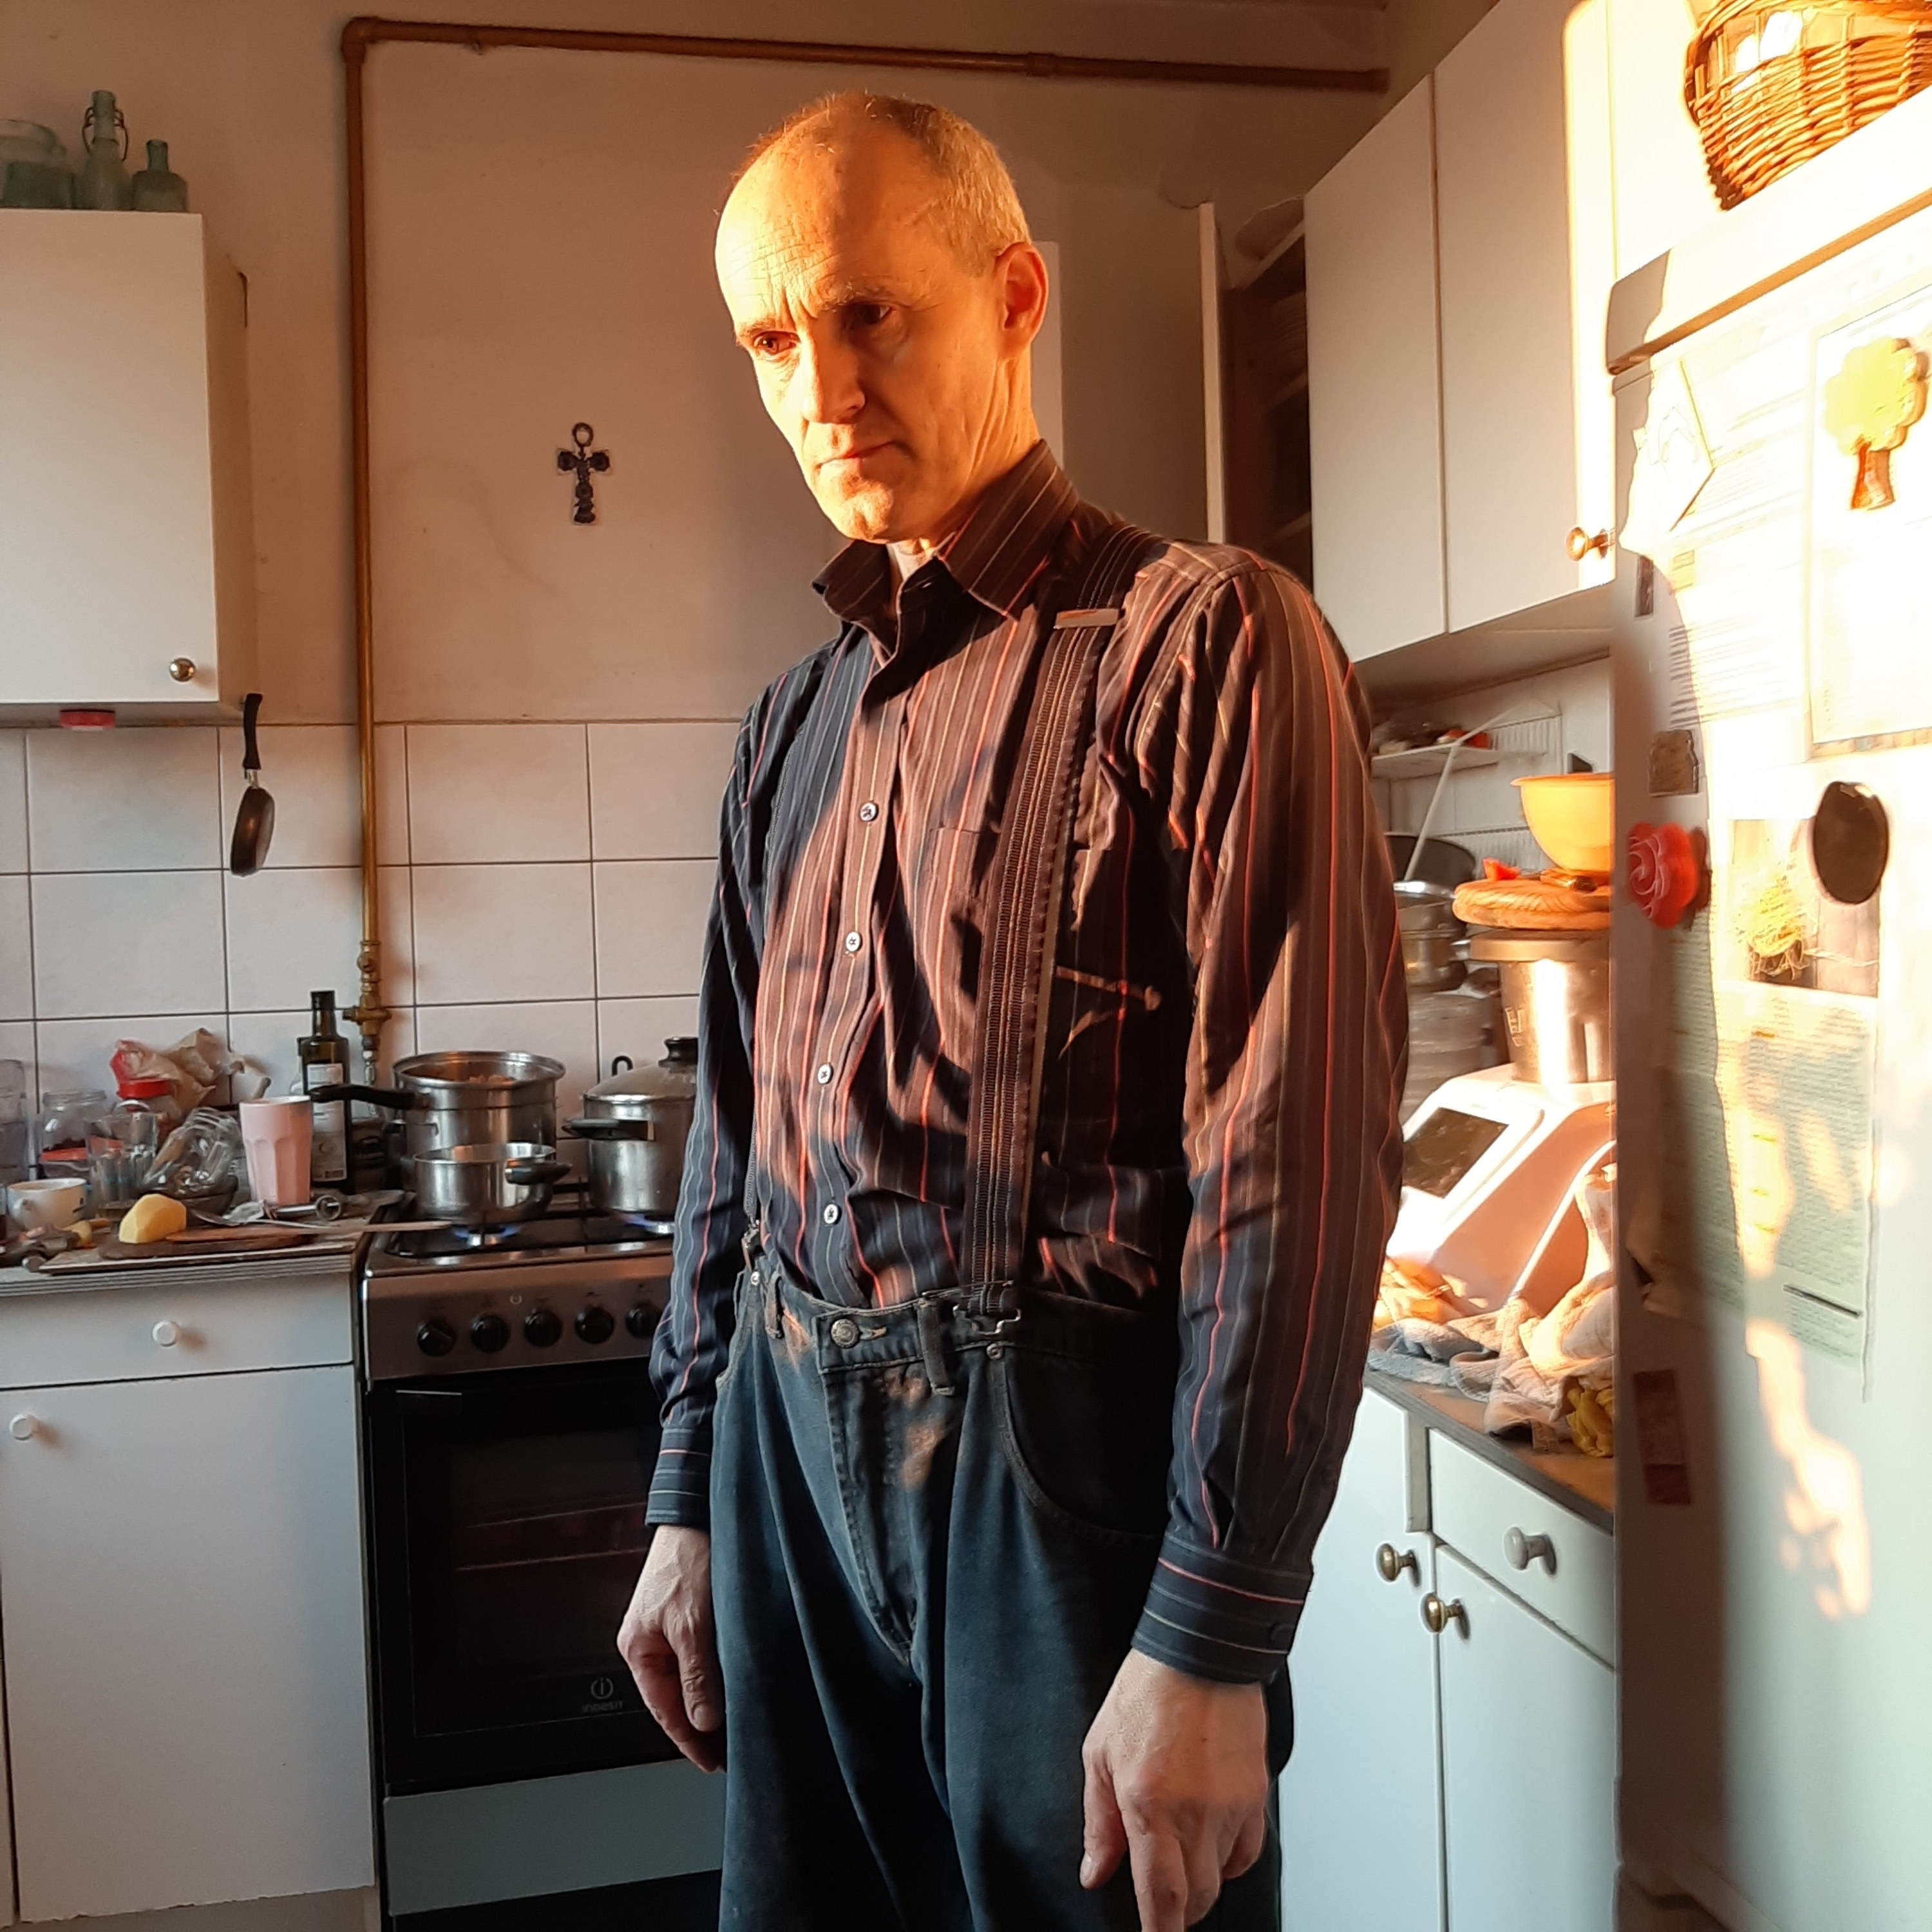 A man in overalls and a striped shirt stands in a kitchen